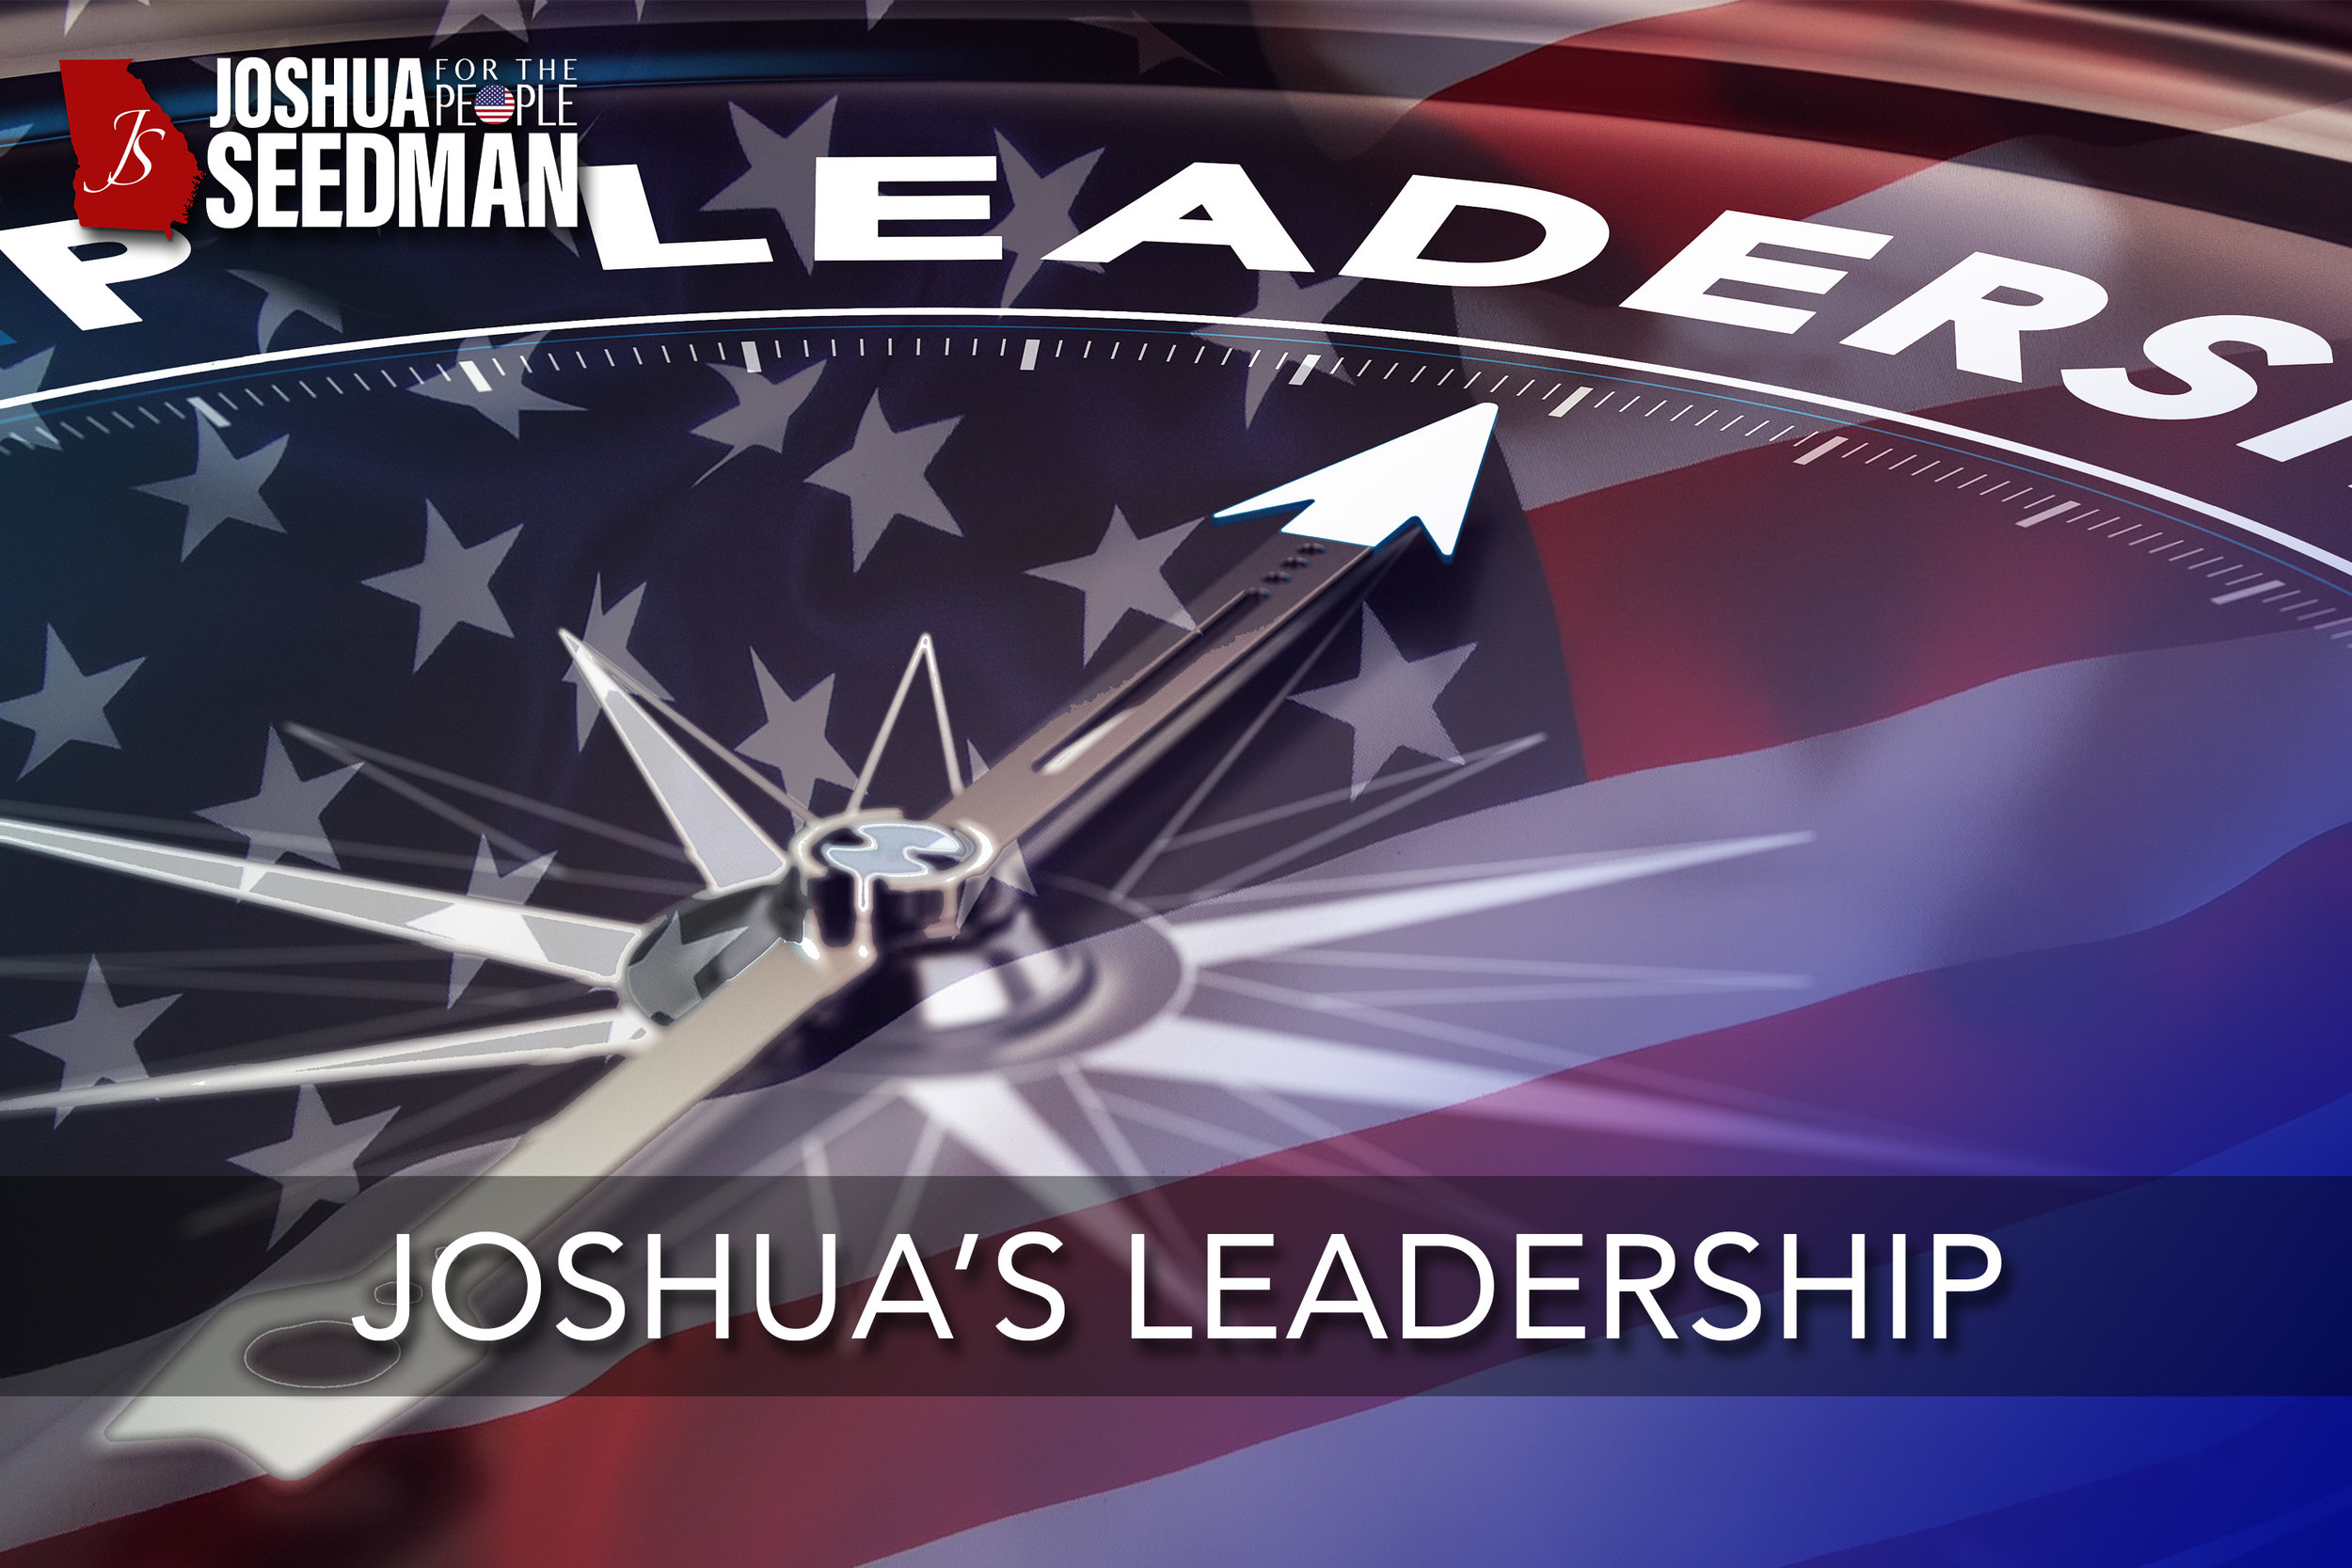 Leadership Experience - Read about Joshua's deep leadership experience and hear what global executives have to say about his leadership approach.